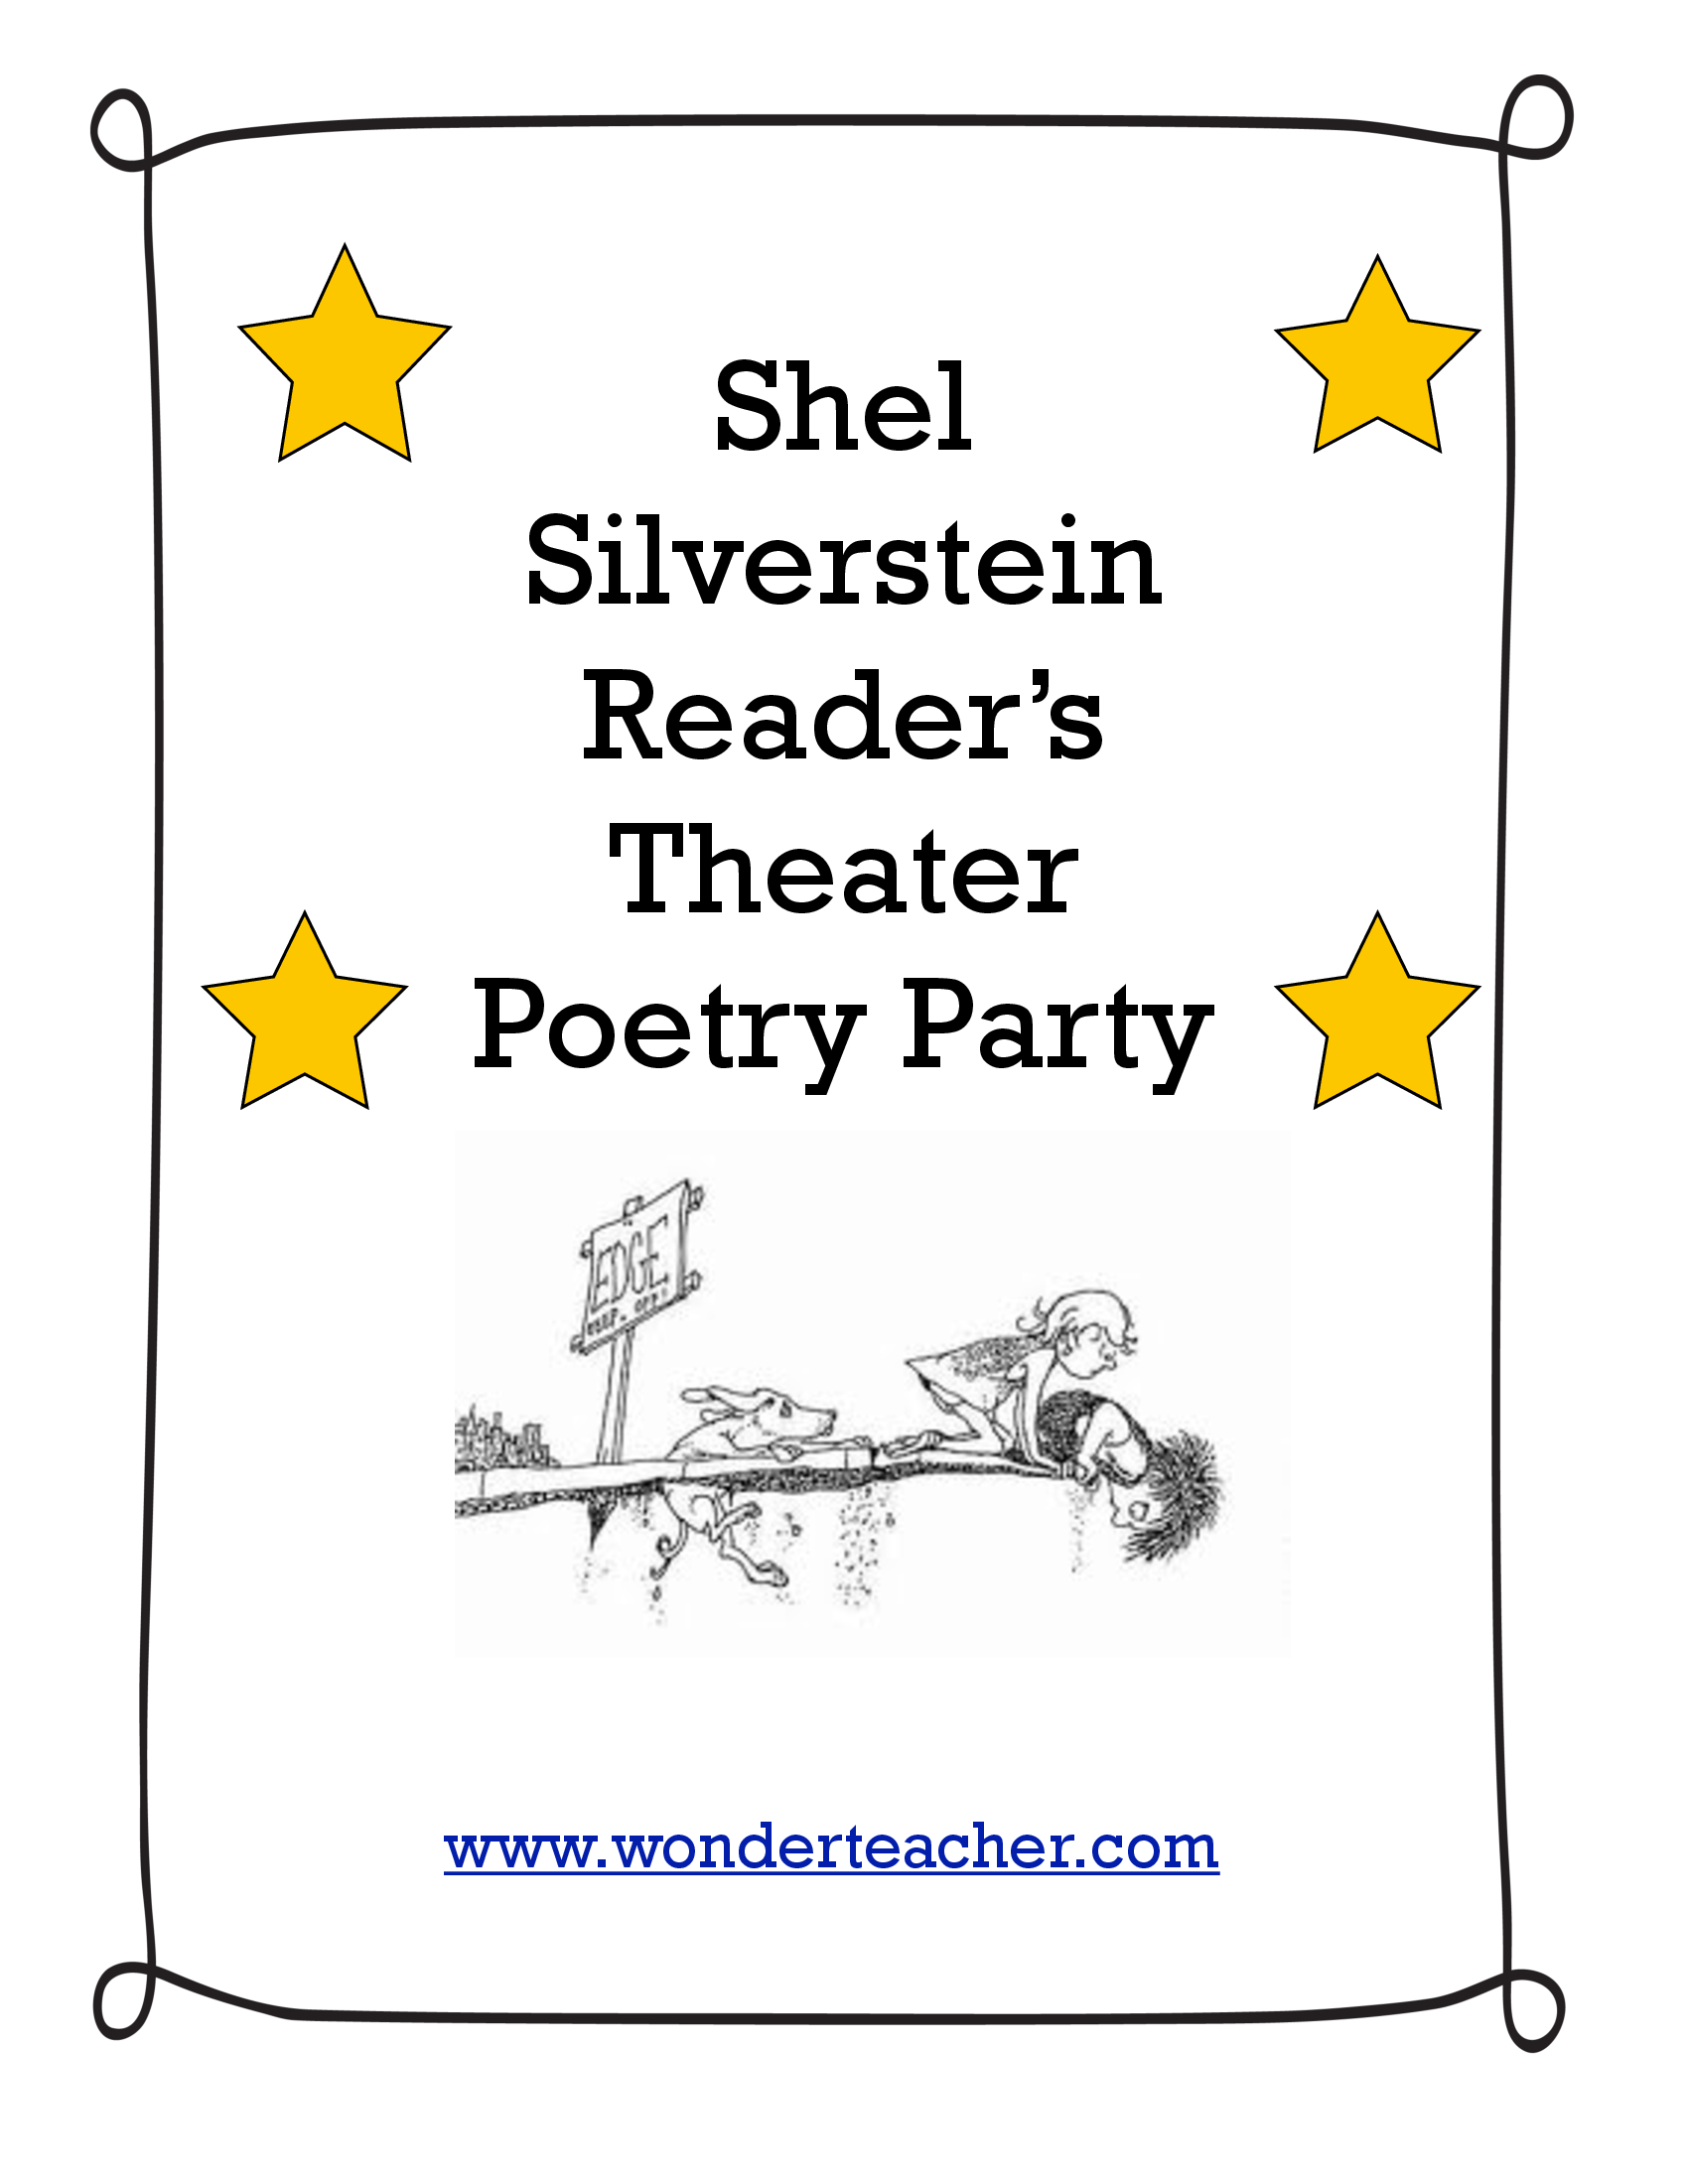 Shel Silverstein Poetry Party